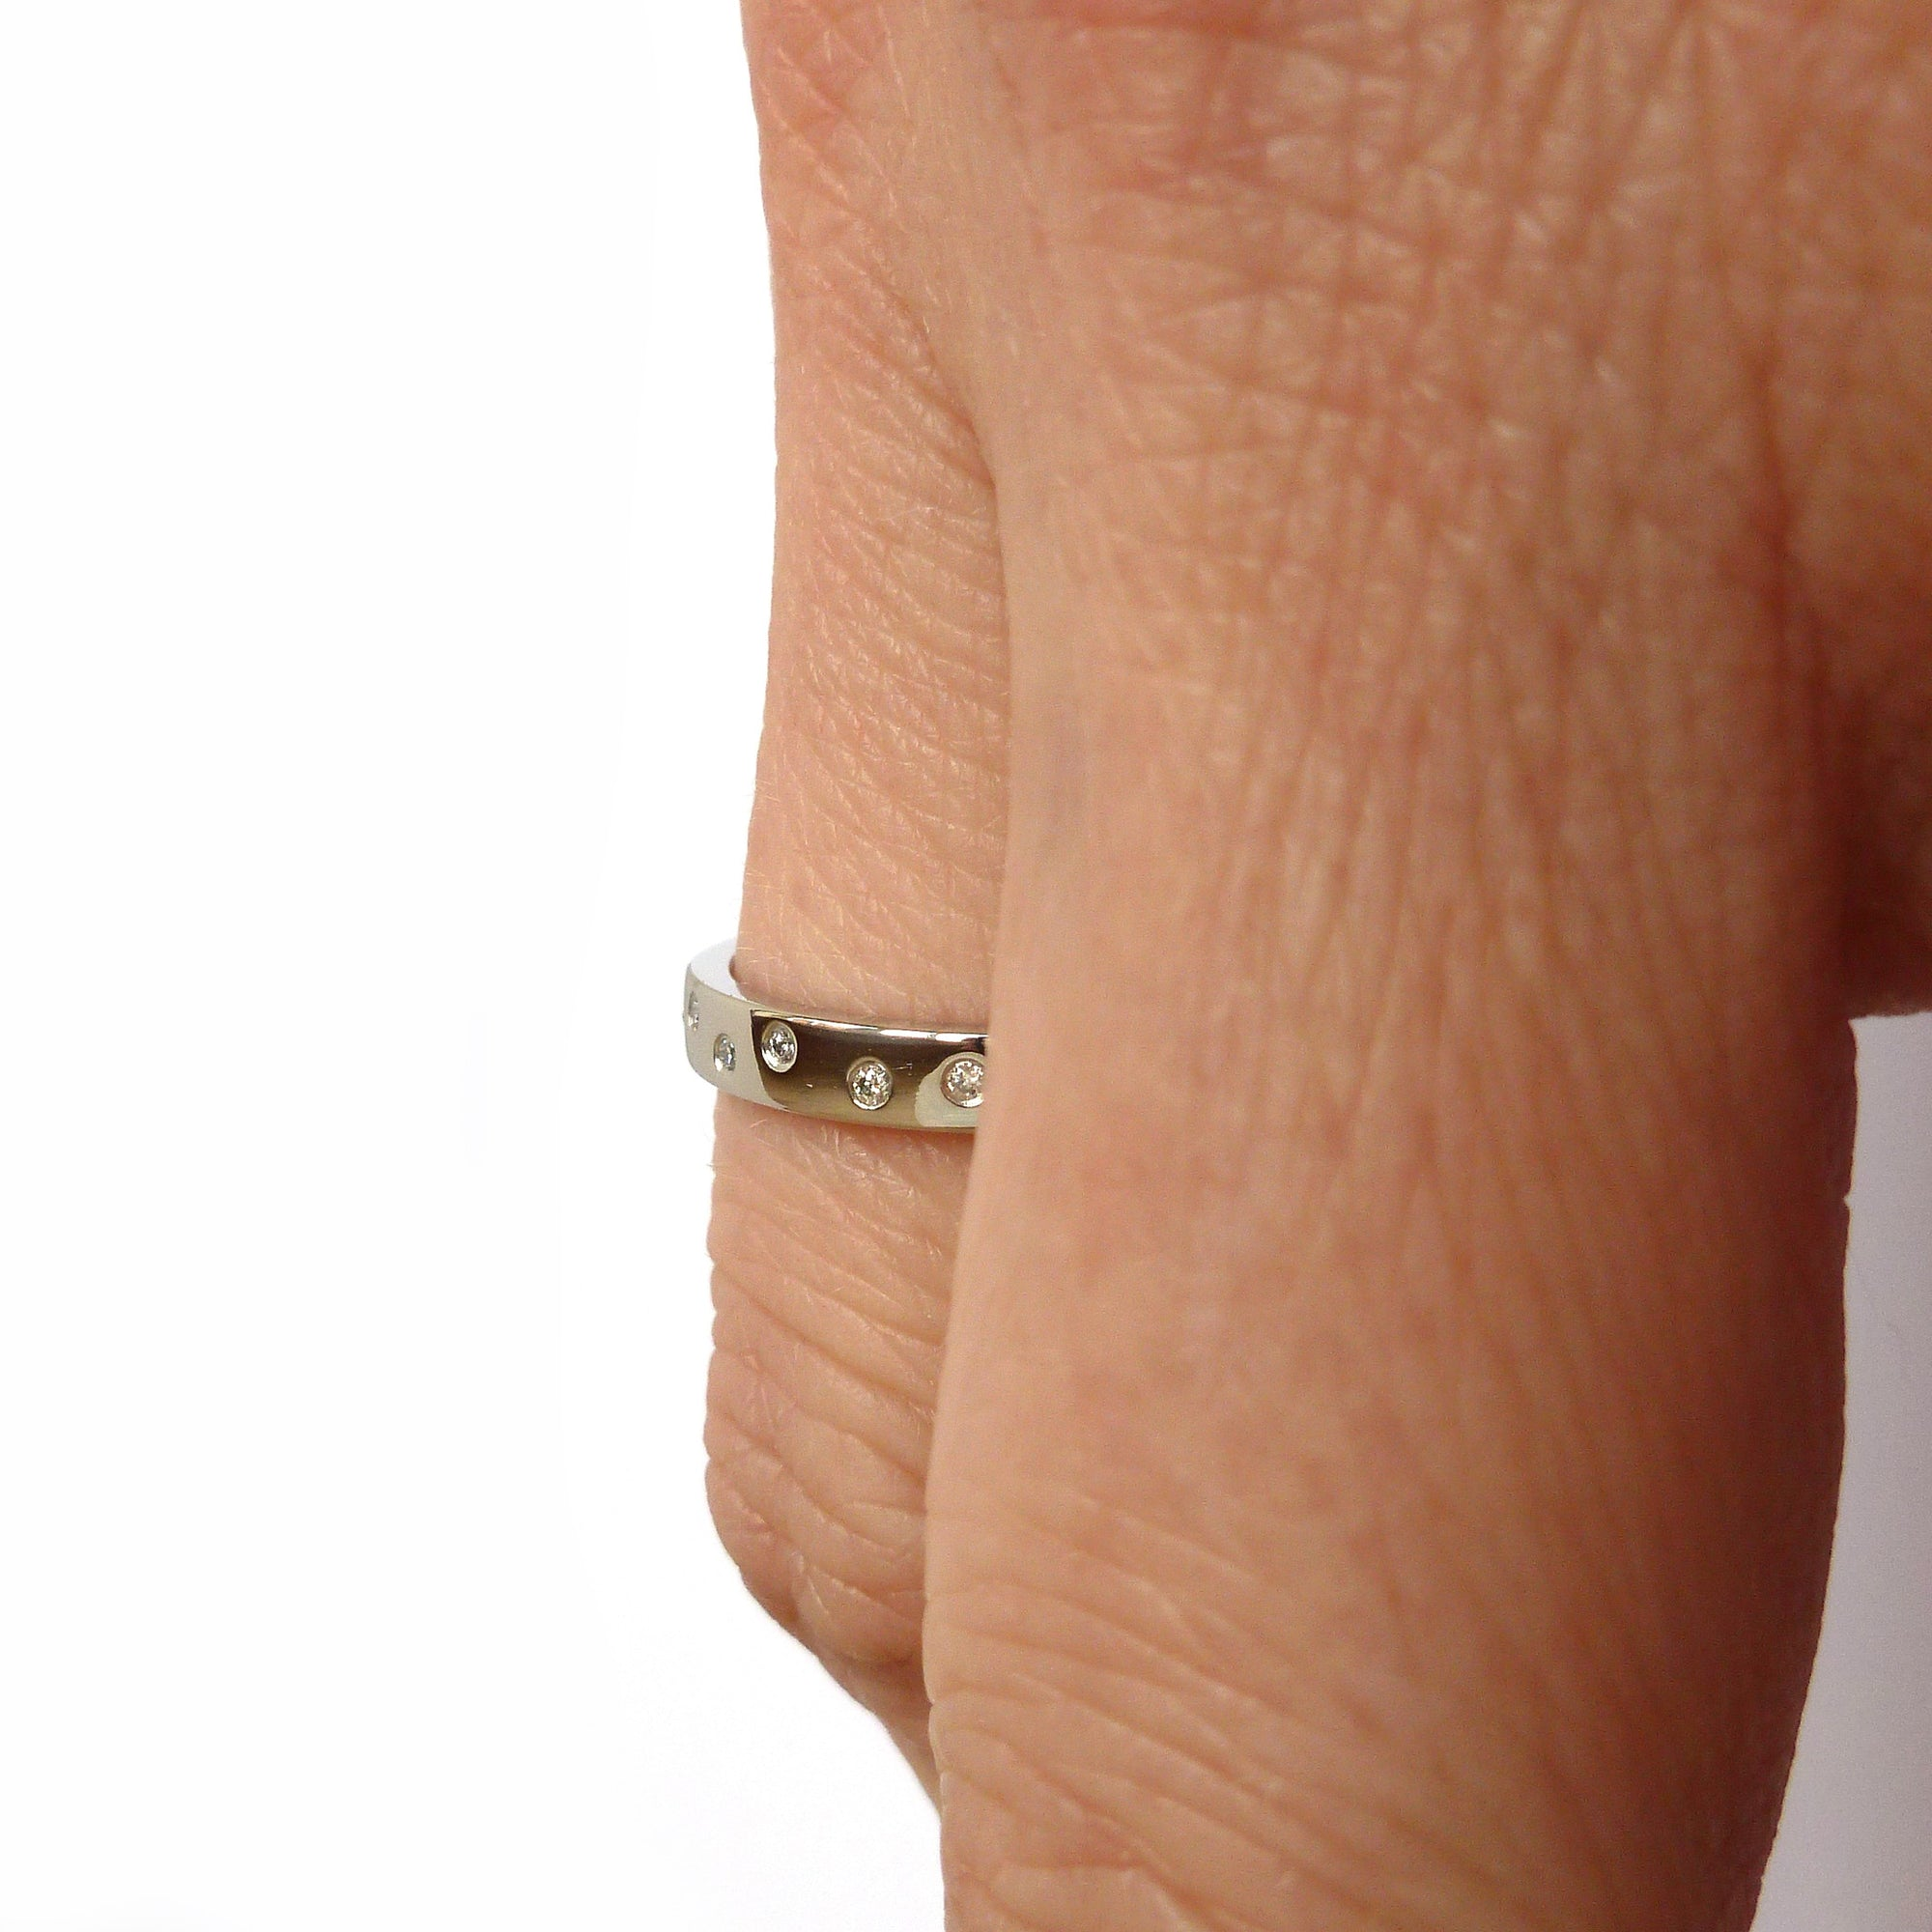 Contemporary platinum eternity ring, bespoke jewellery by Sue Lane